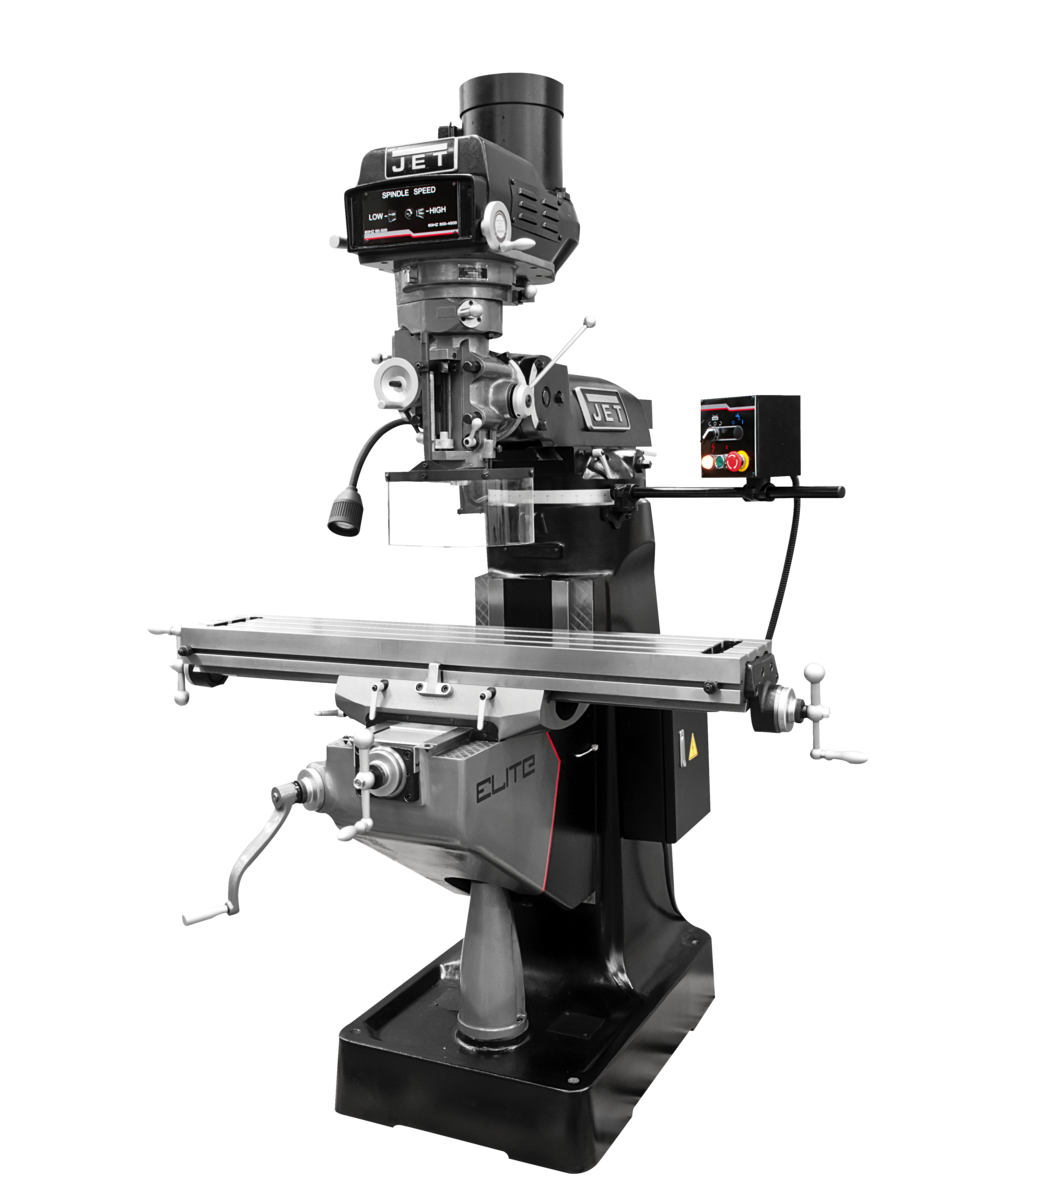 ETM-949 Mill with 2-Axis Newall DP700 DRO and Servo X, Y-Axis Powerfeeds and USA Air Powered Draw Bar